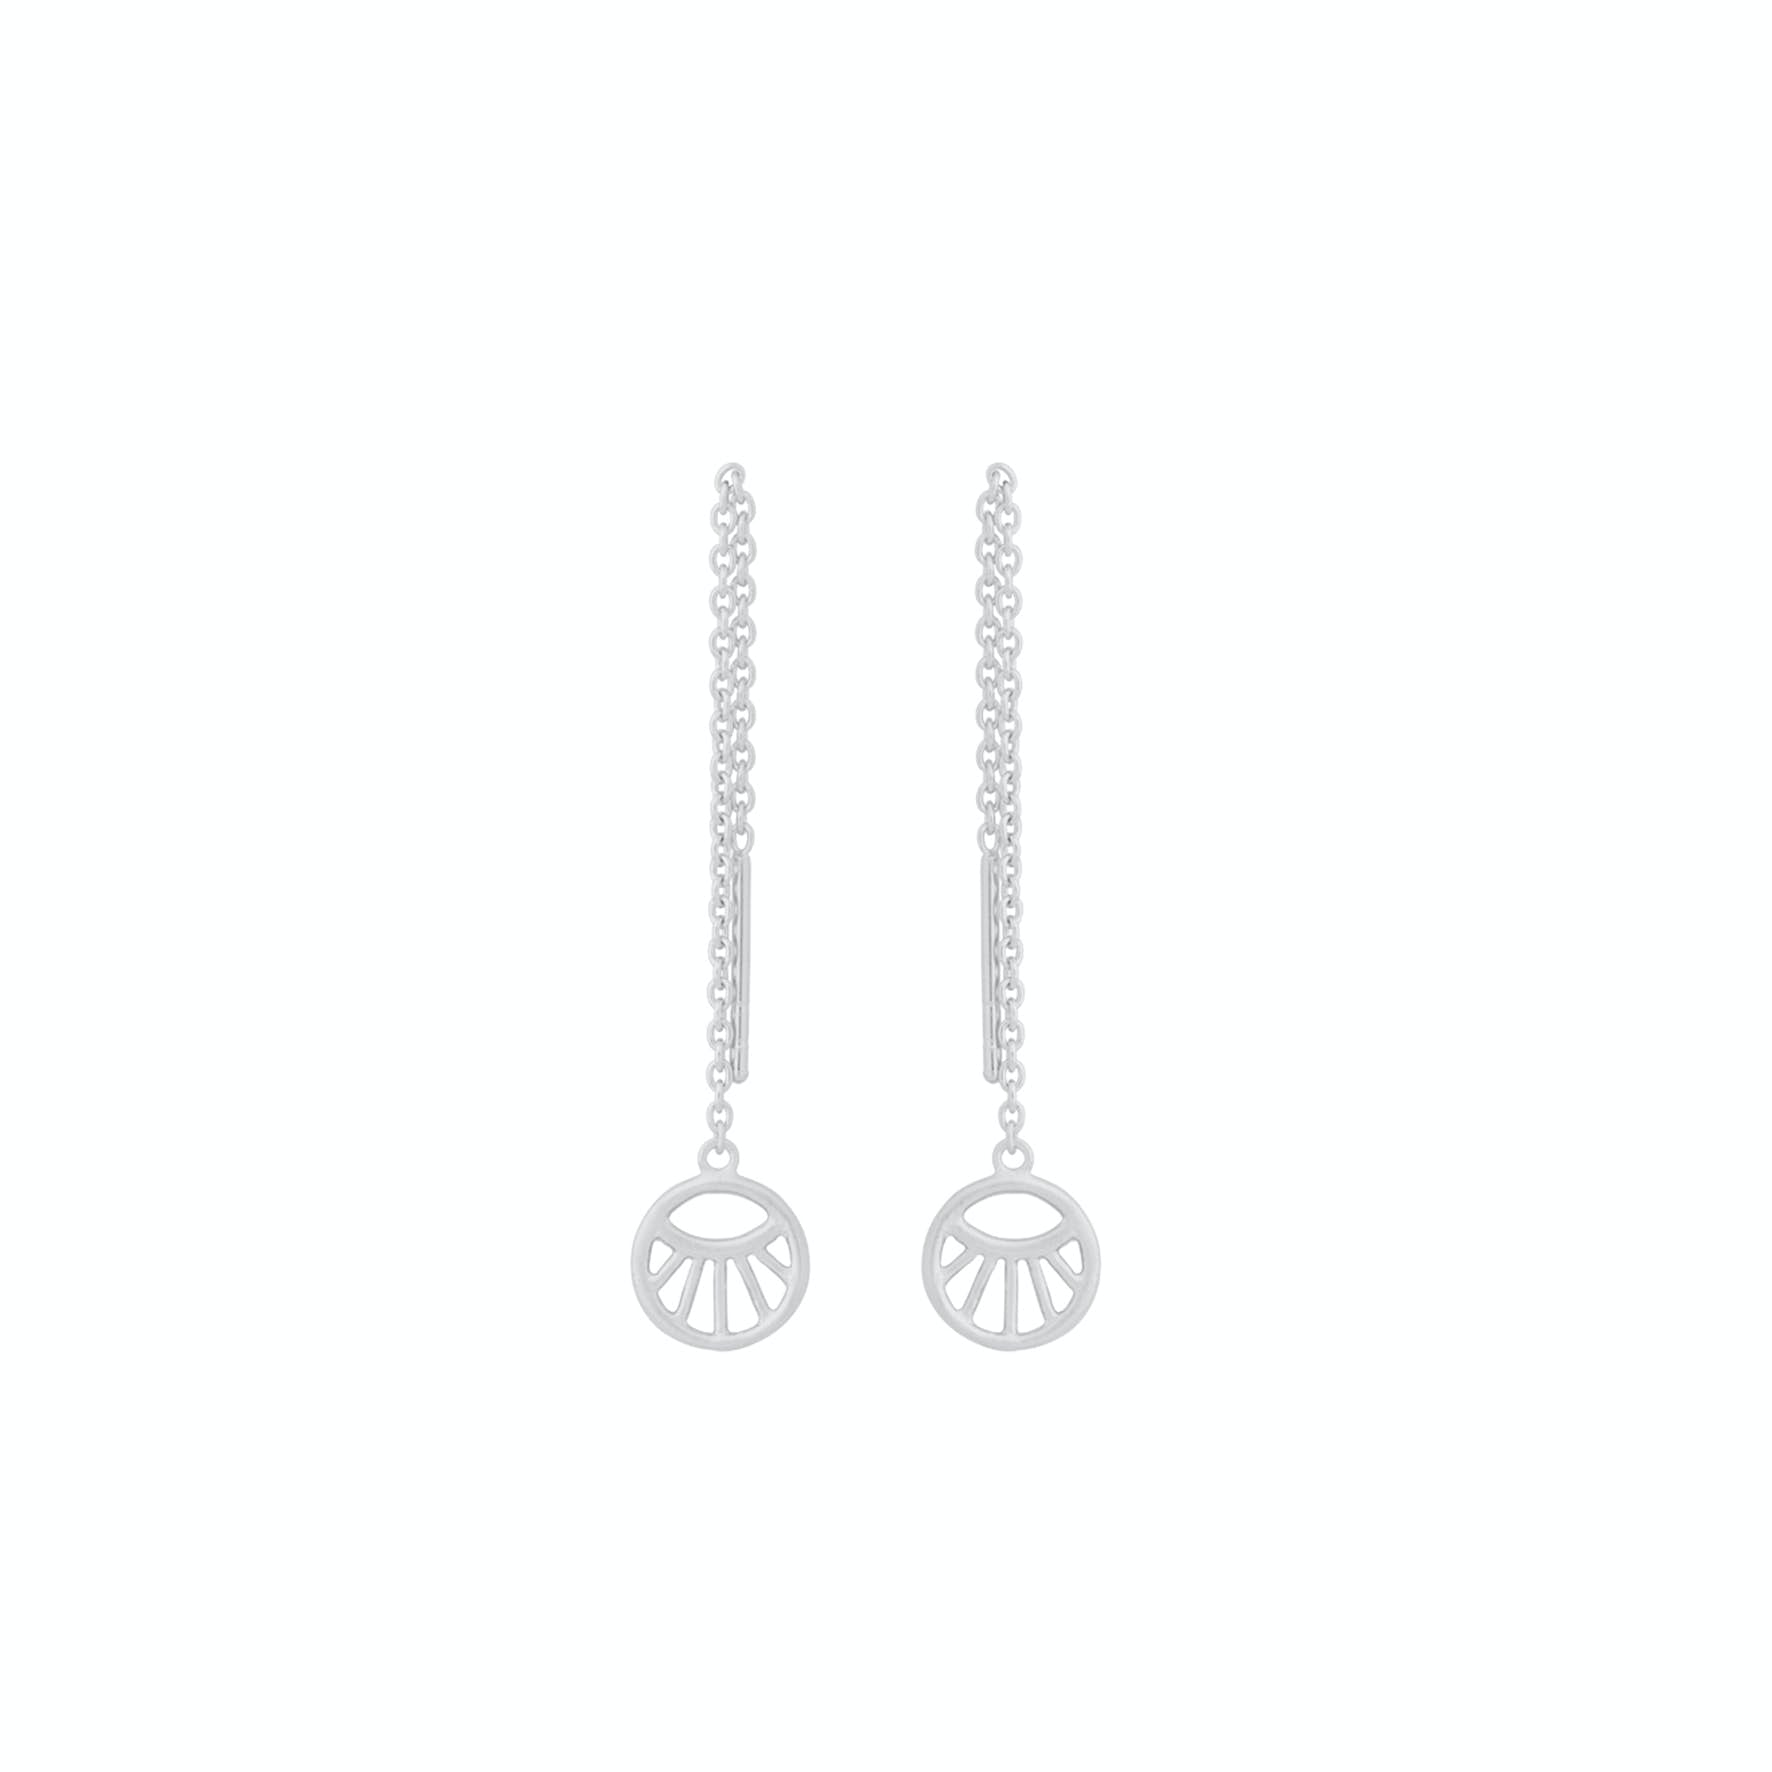 Small Daylight Earchains von Pernille Corydon in Silber Sterling 925